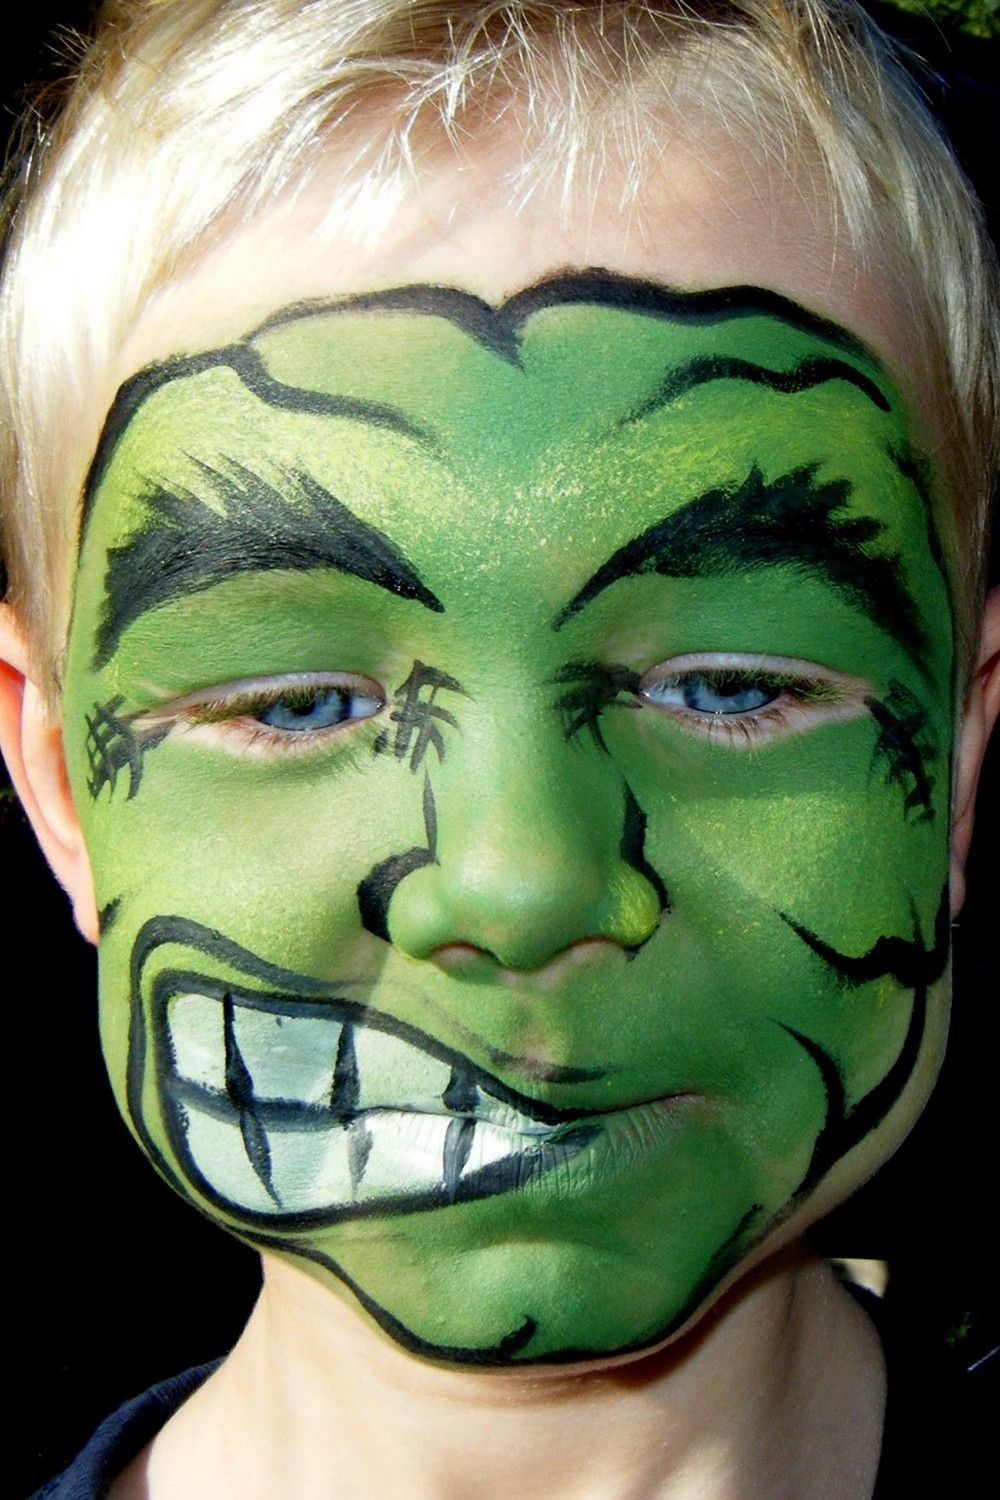 Pin By Neith Andriy On Maquillage Batman In 2020 Boy Halloween Makeup Hulk Face Painting Halloween Makeup For Kids